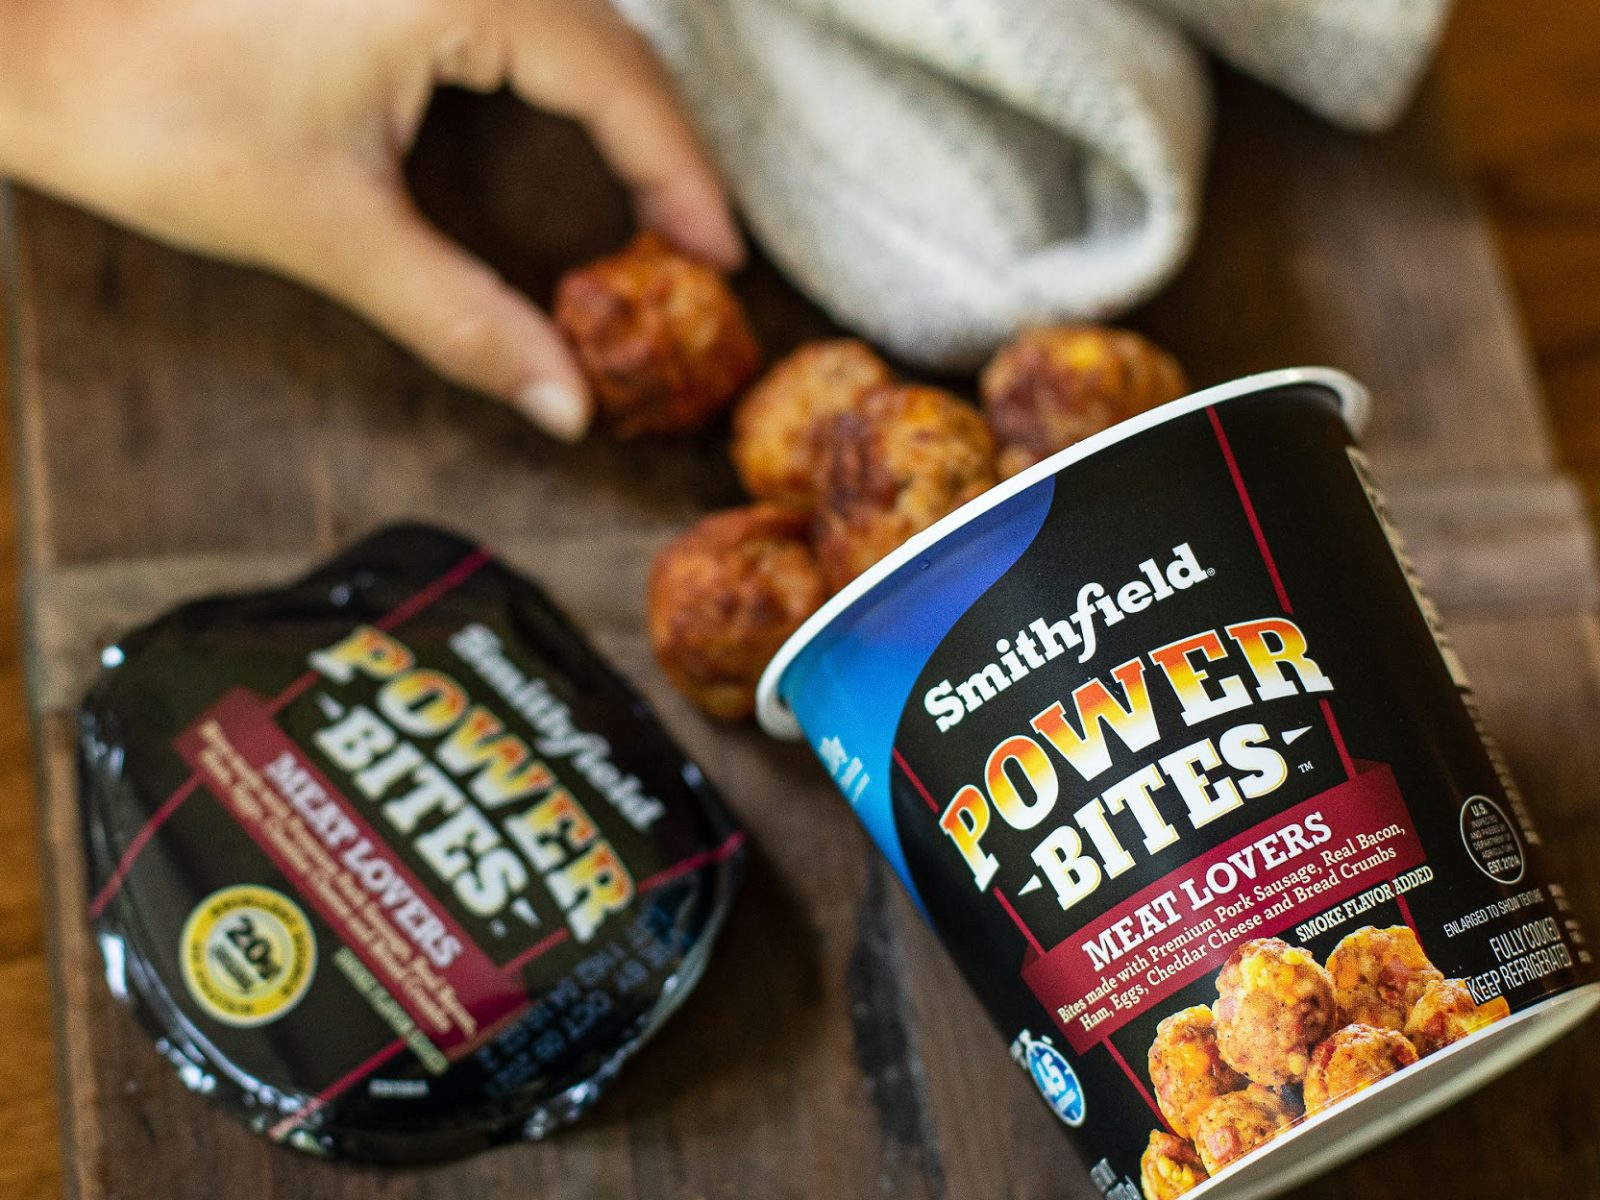 Grab A Super Deal On Smithfield Power Bites - FREE At Publix on I Heart Publix 1